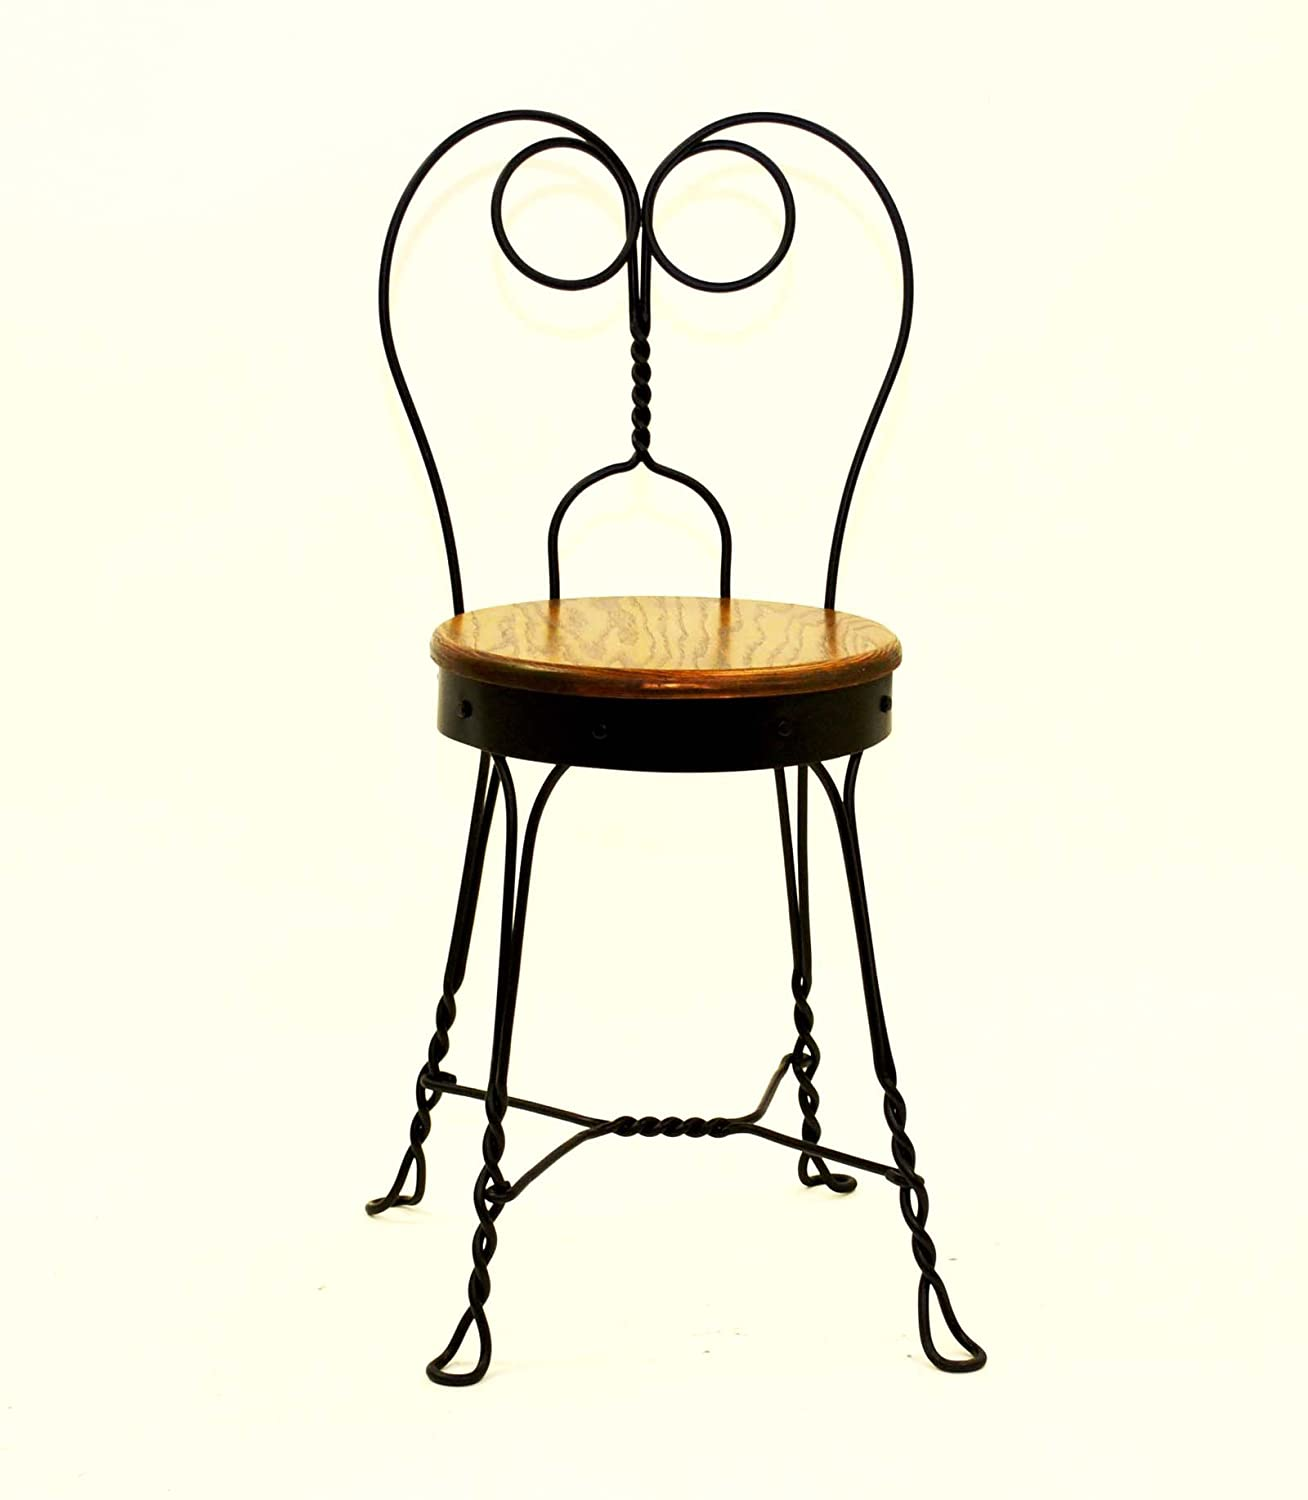 Amazon Antique Reproduction Ice Cream Parlor Chair Made the